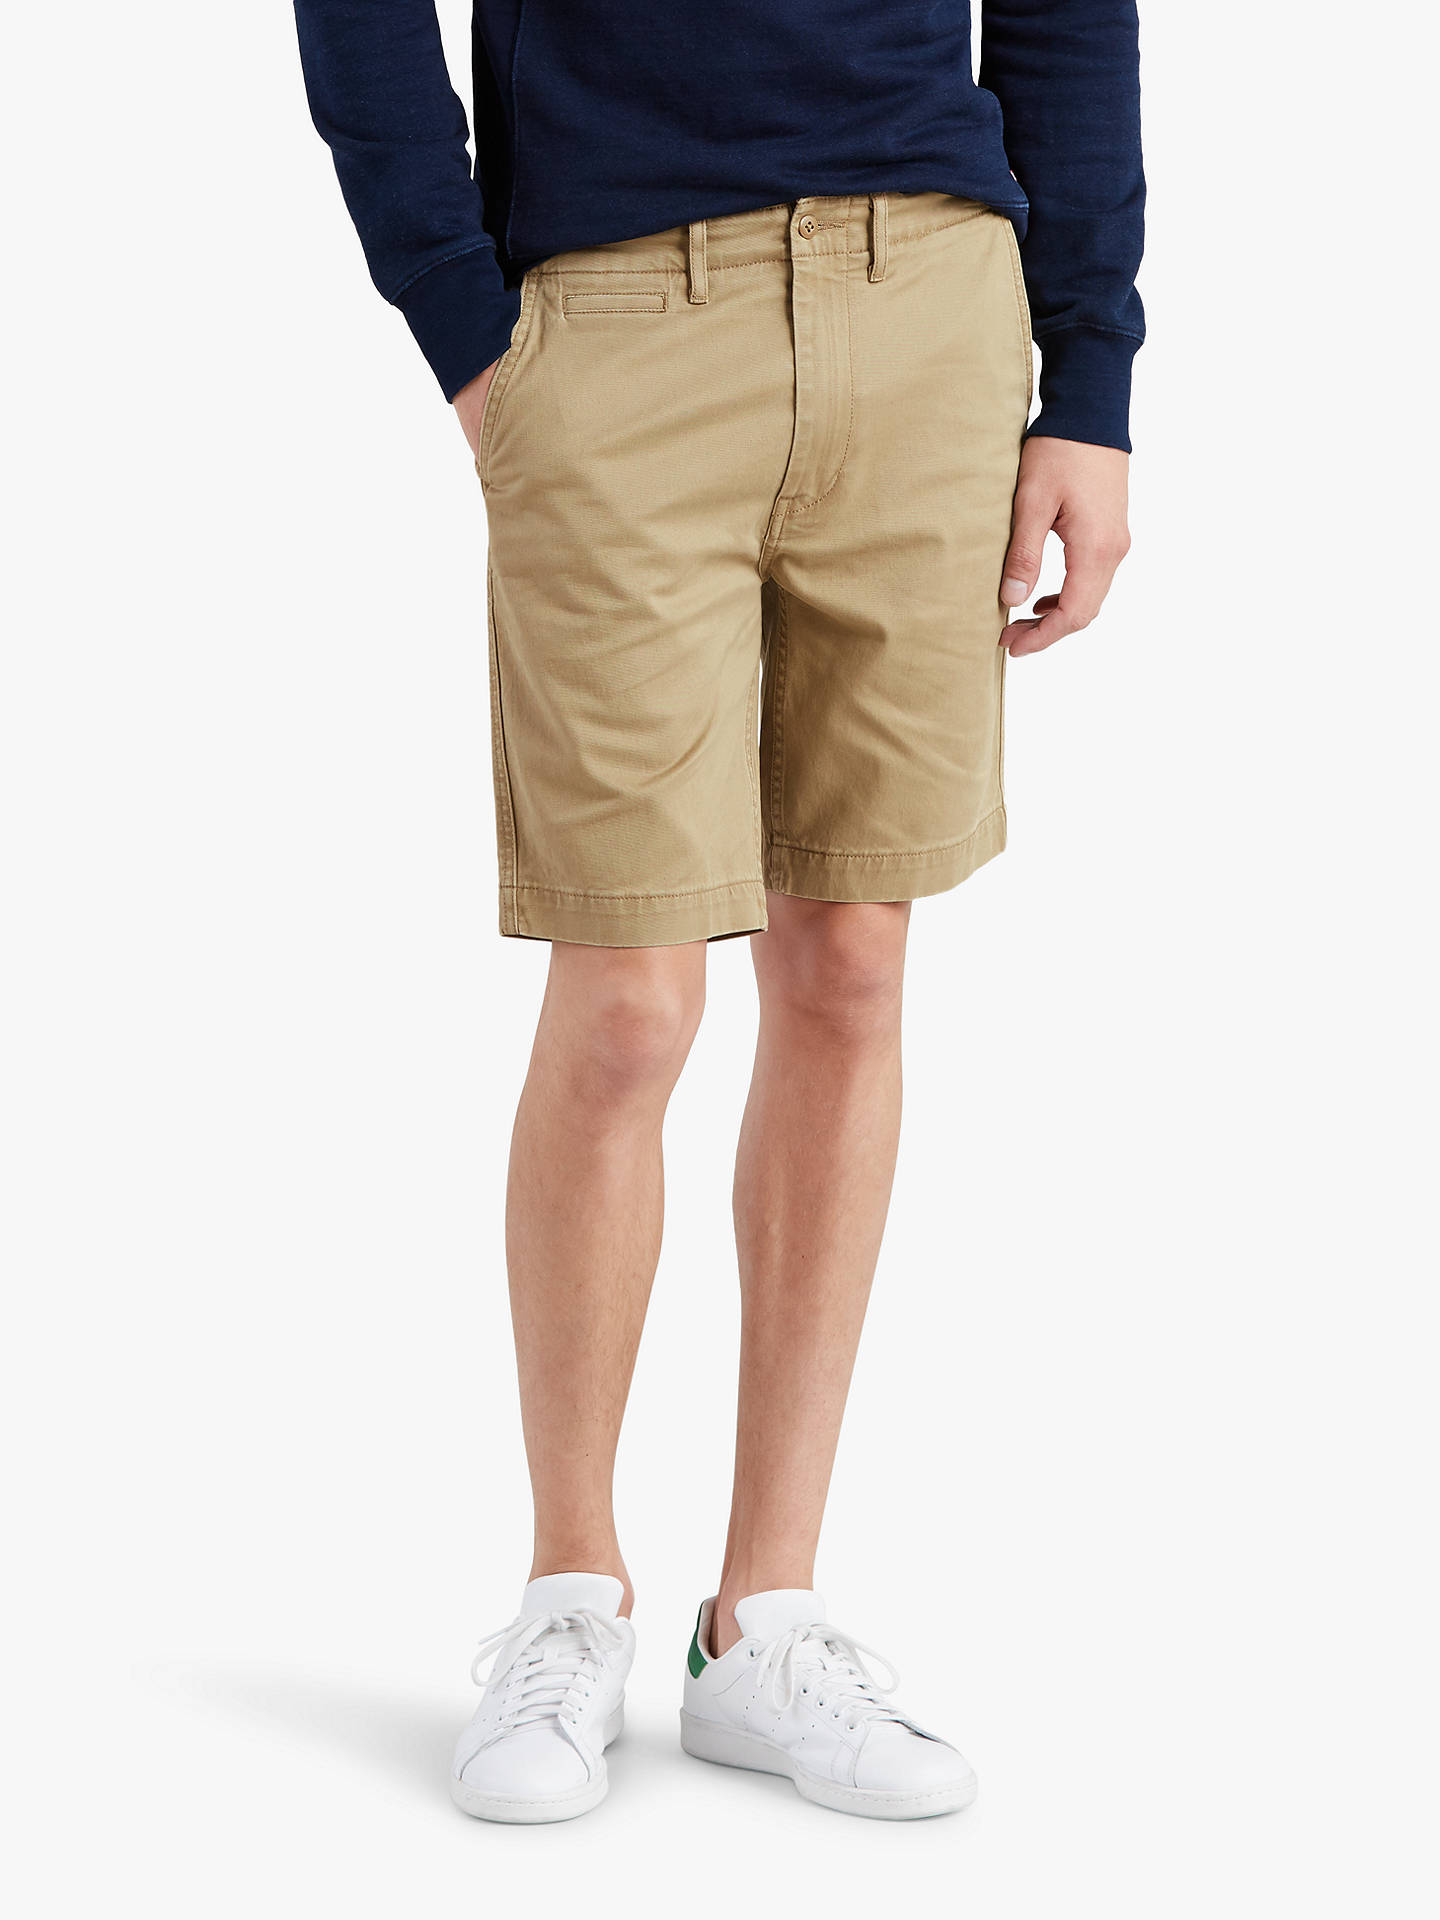 80ea93cc Buy Levi's 502 Chino Shorts, Lead Gray Twill, 38R Online at johnlewis. ...